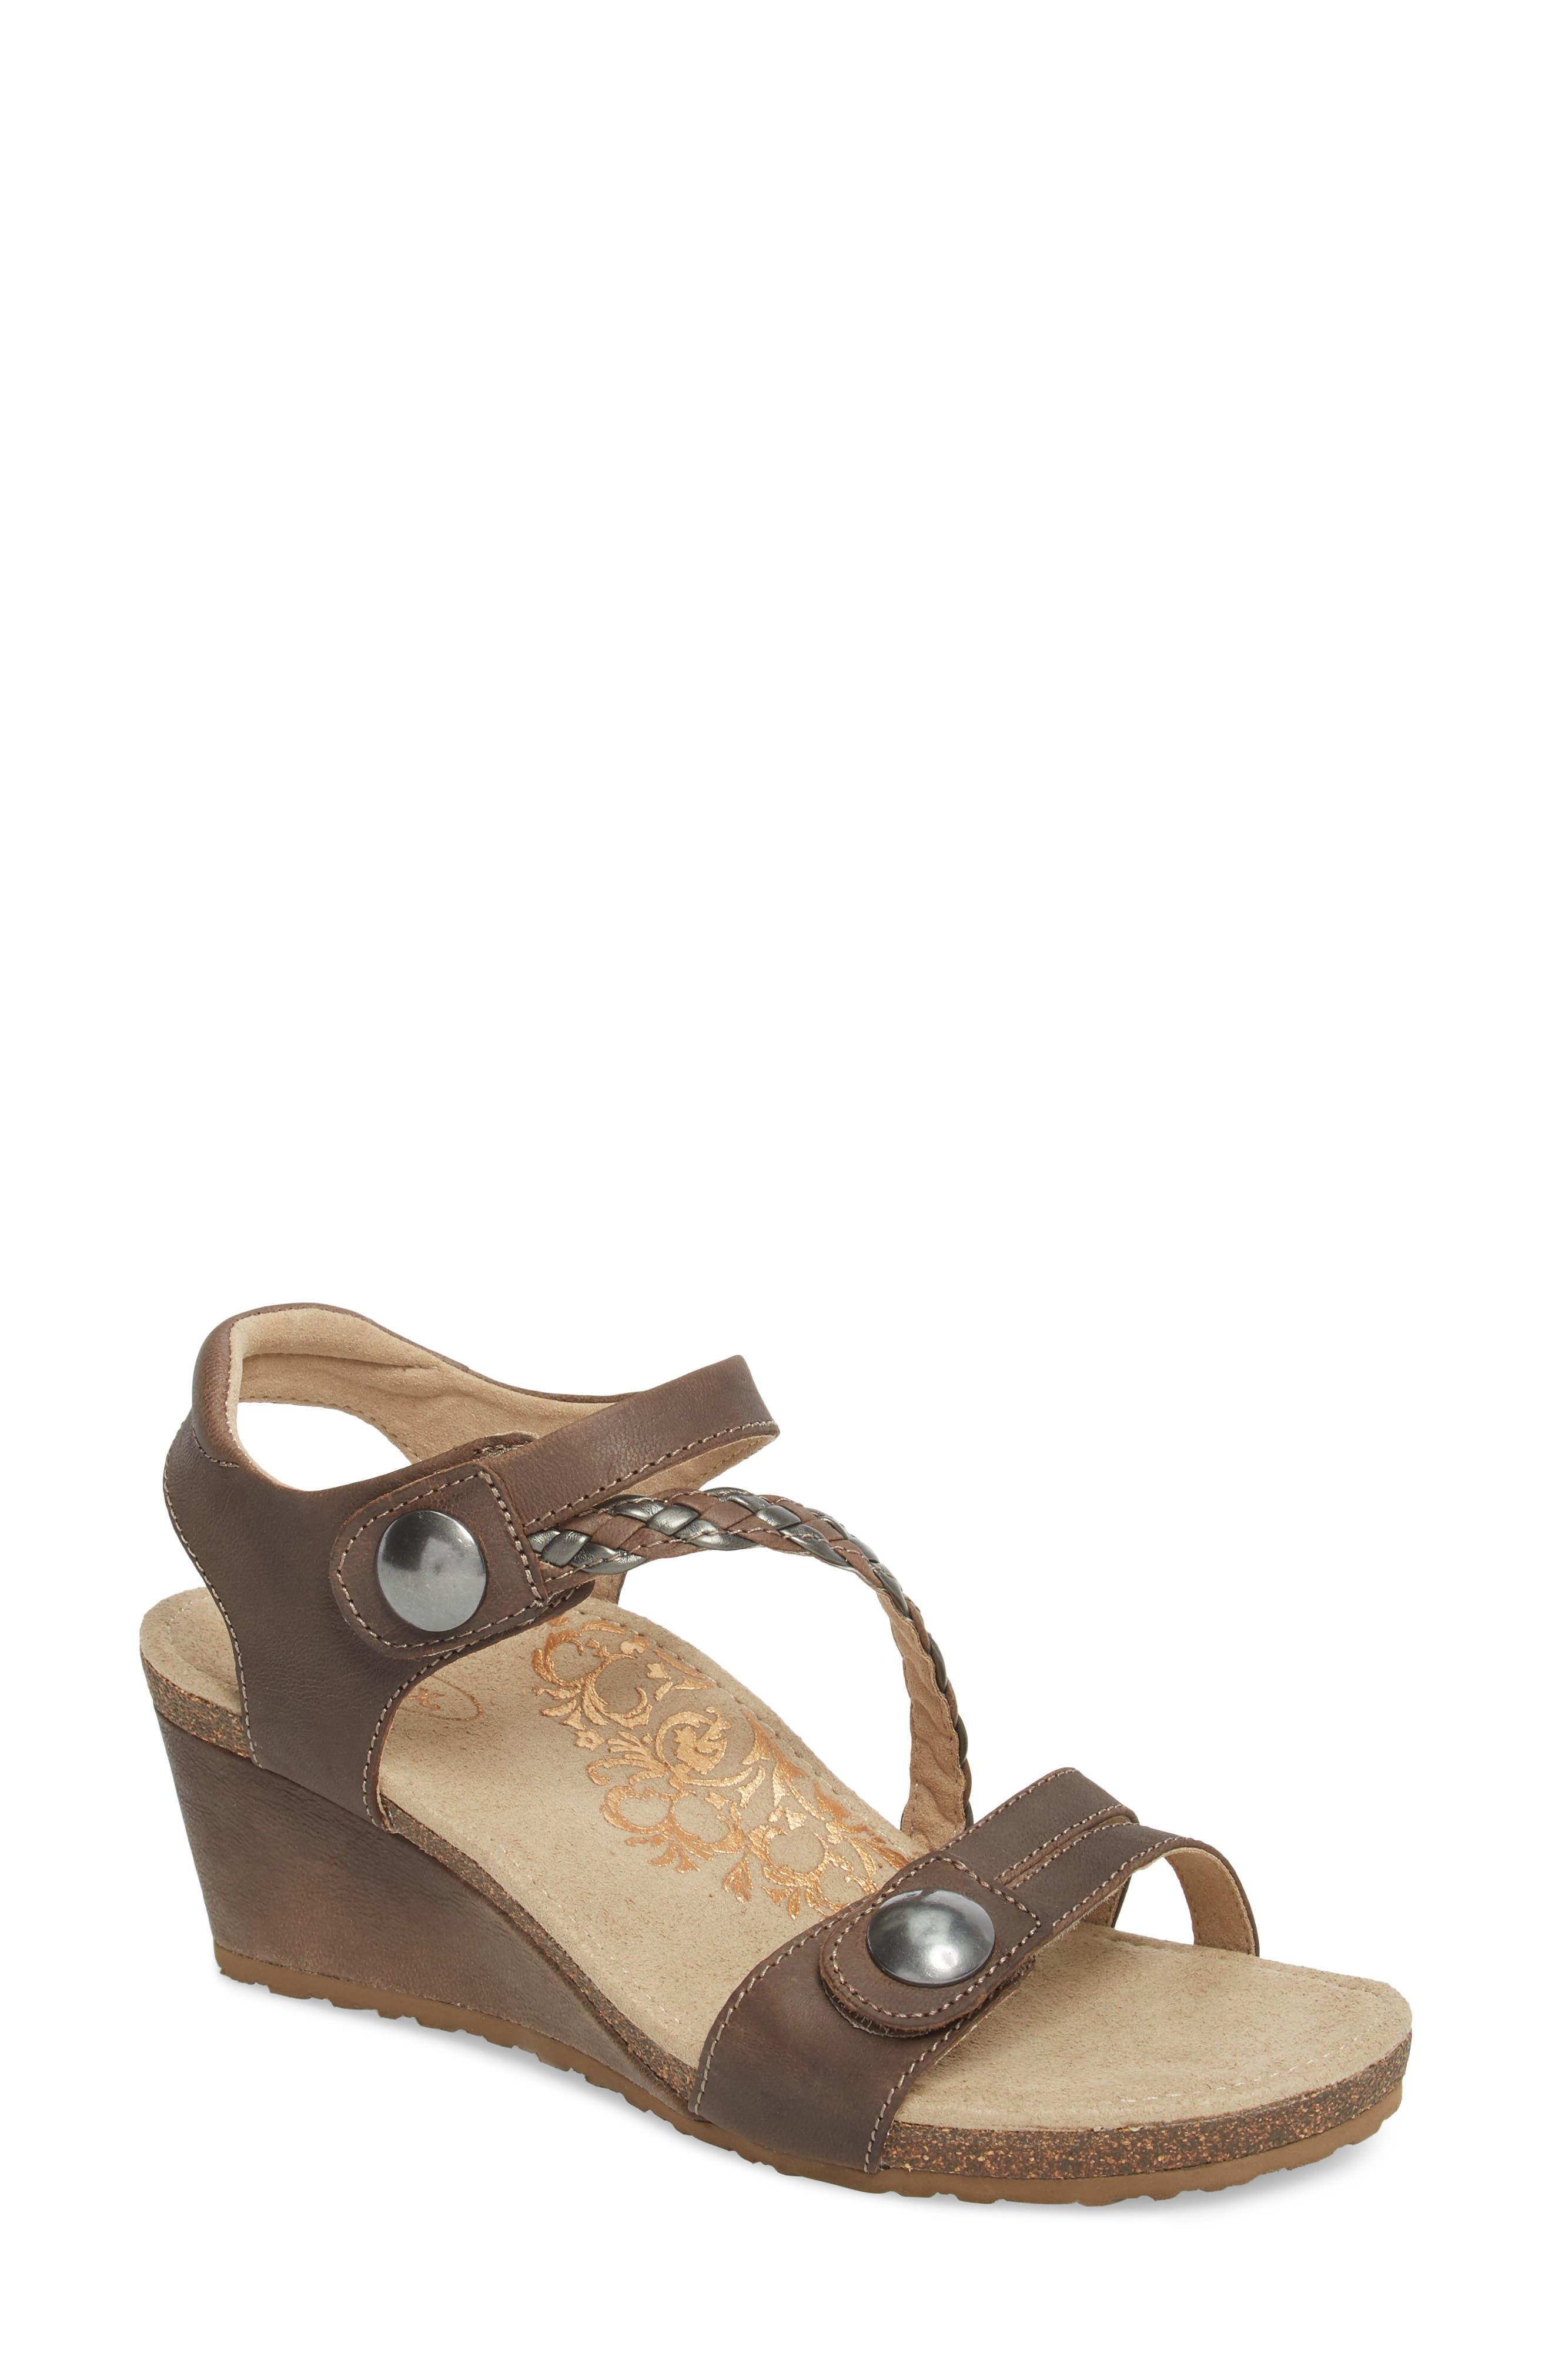 'Naya' Wedge Sandal,                         Main,                         color, STONE LEATHER